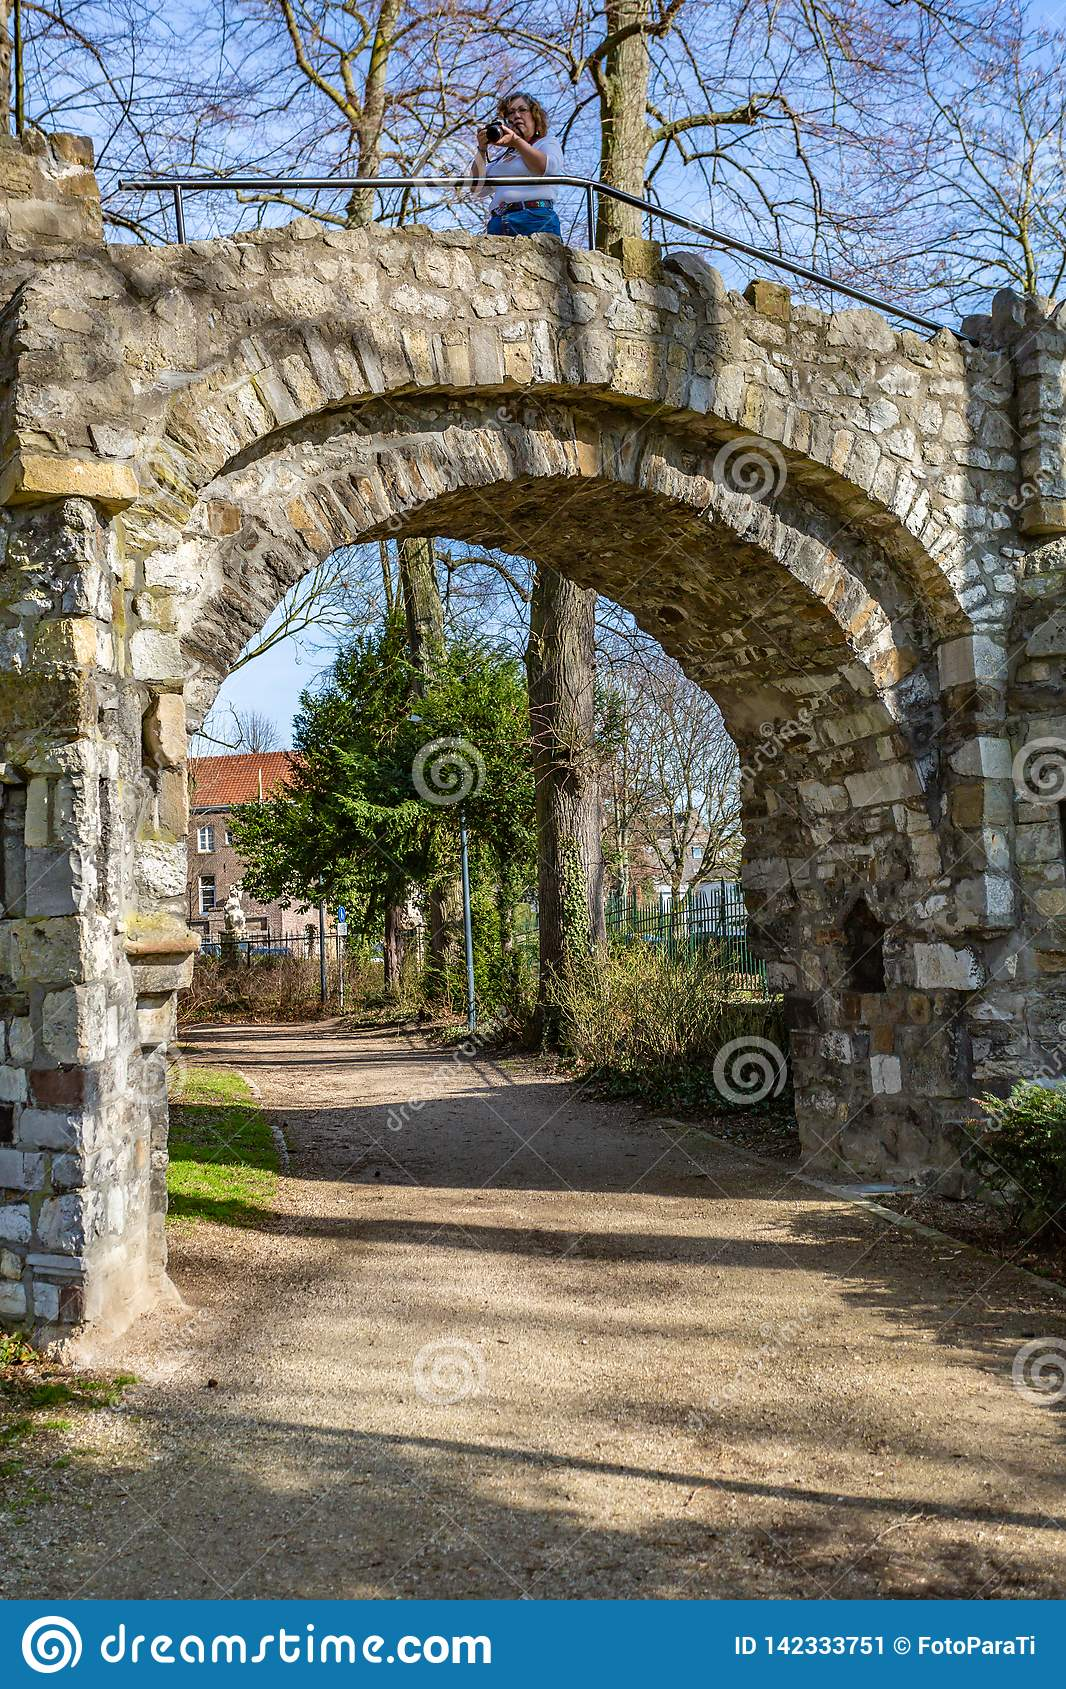 Dirt road and the arch of an old stone bridge with a woman in it taking a picture,